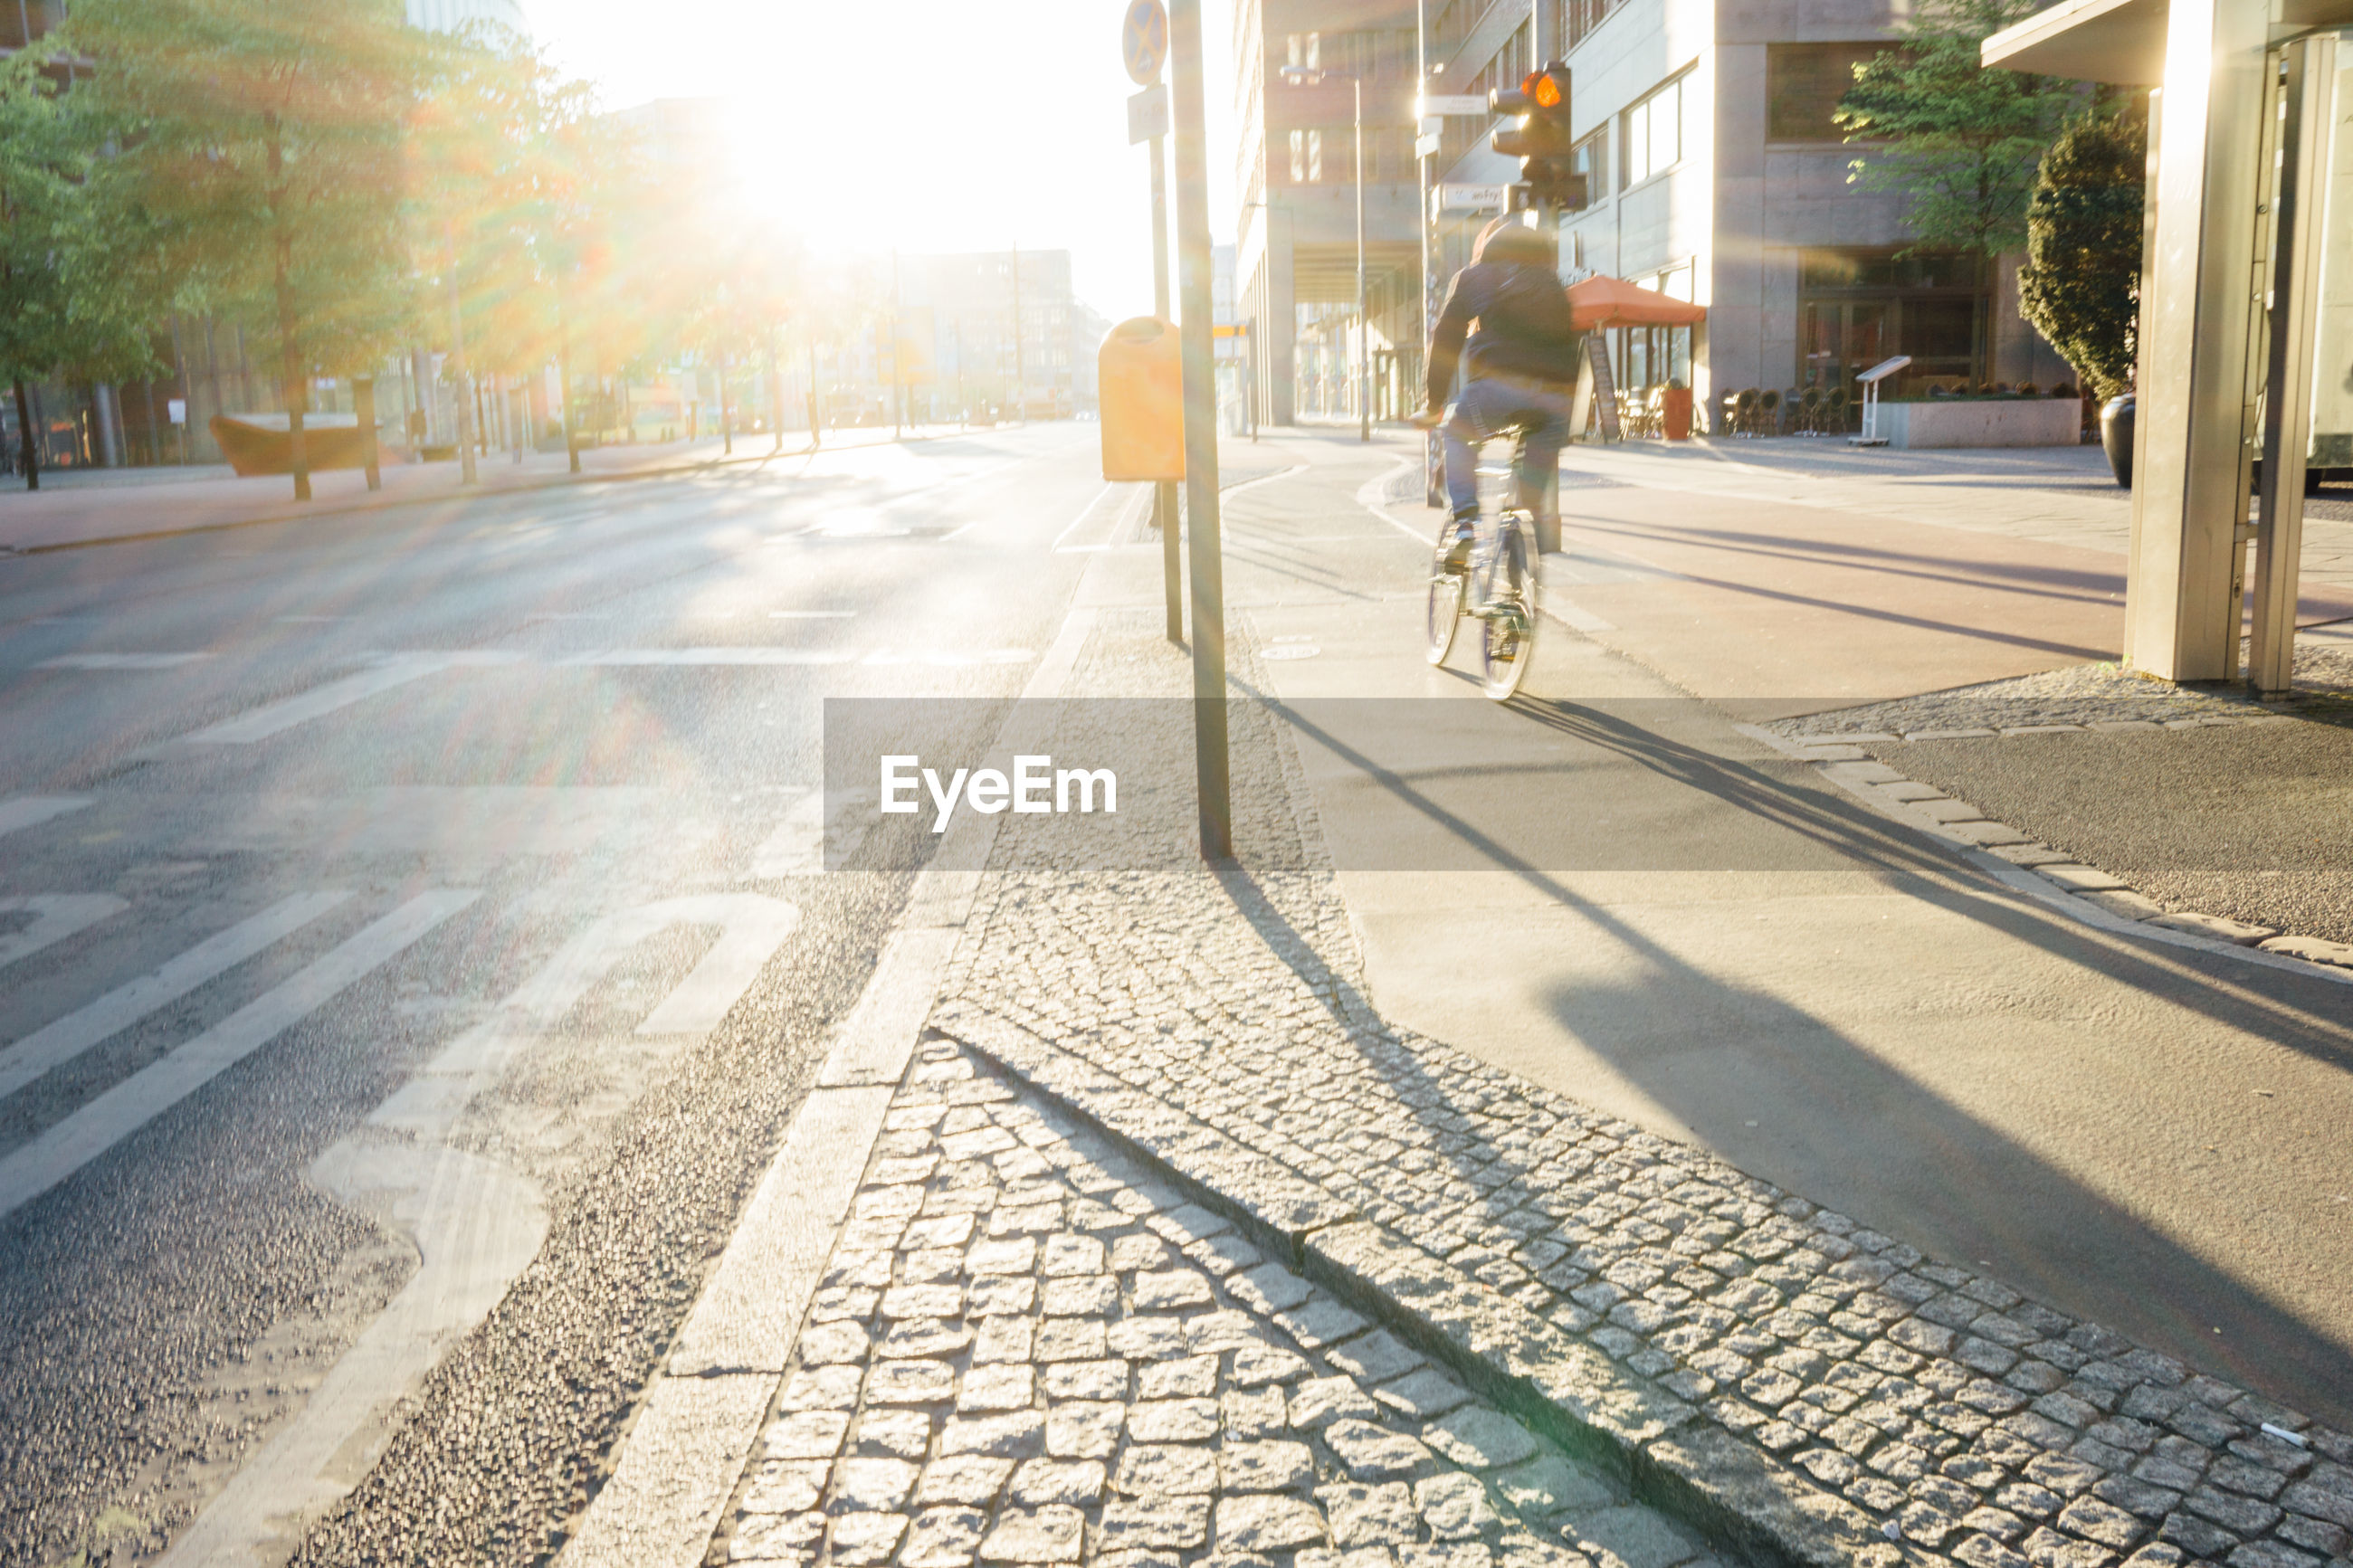 Rear view of man riding bicycle on sidewalk during sunny day